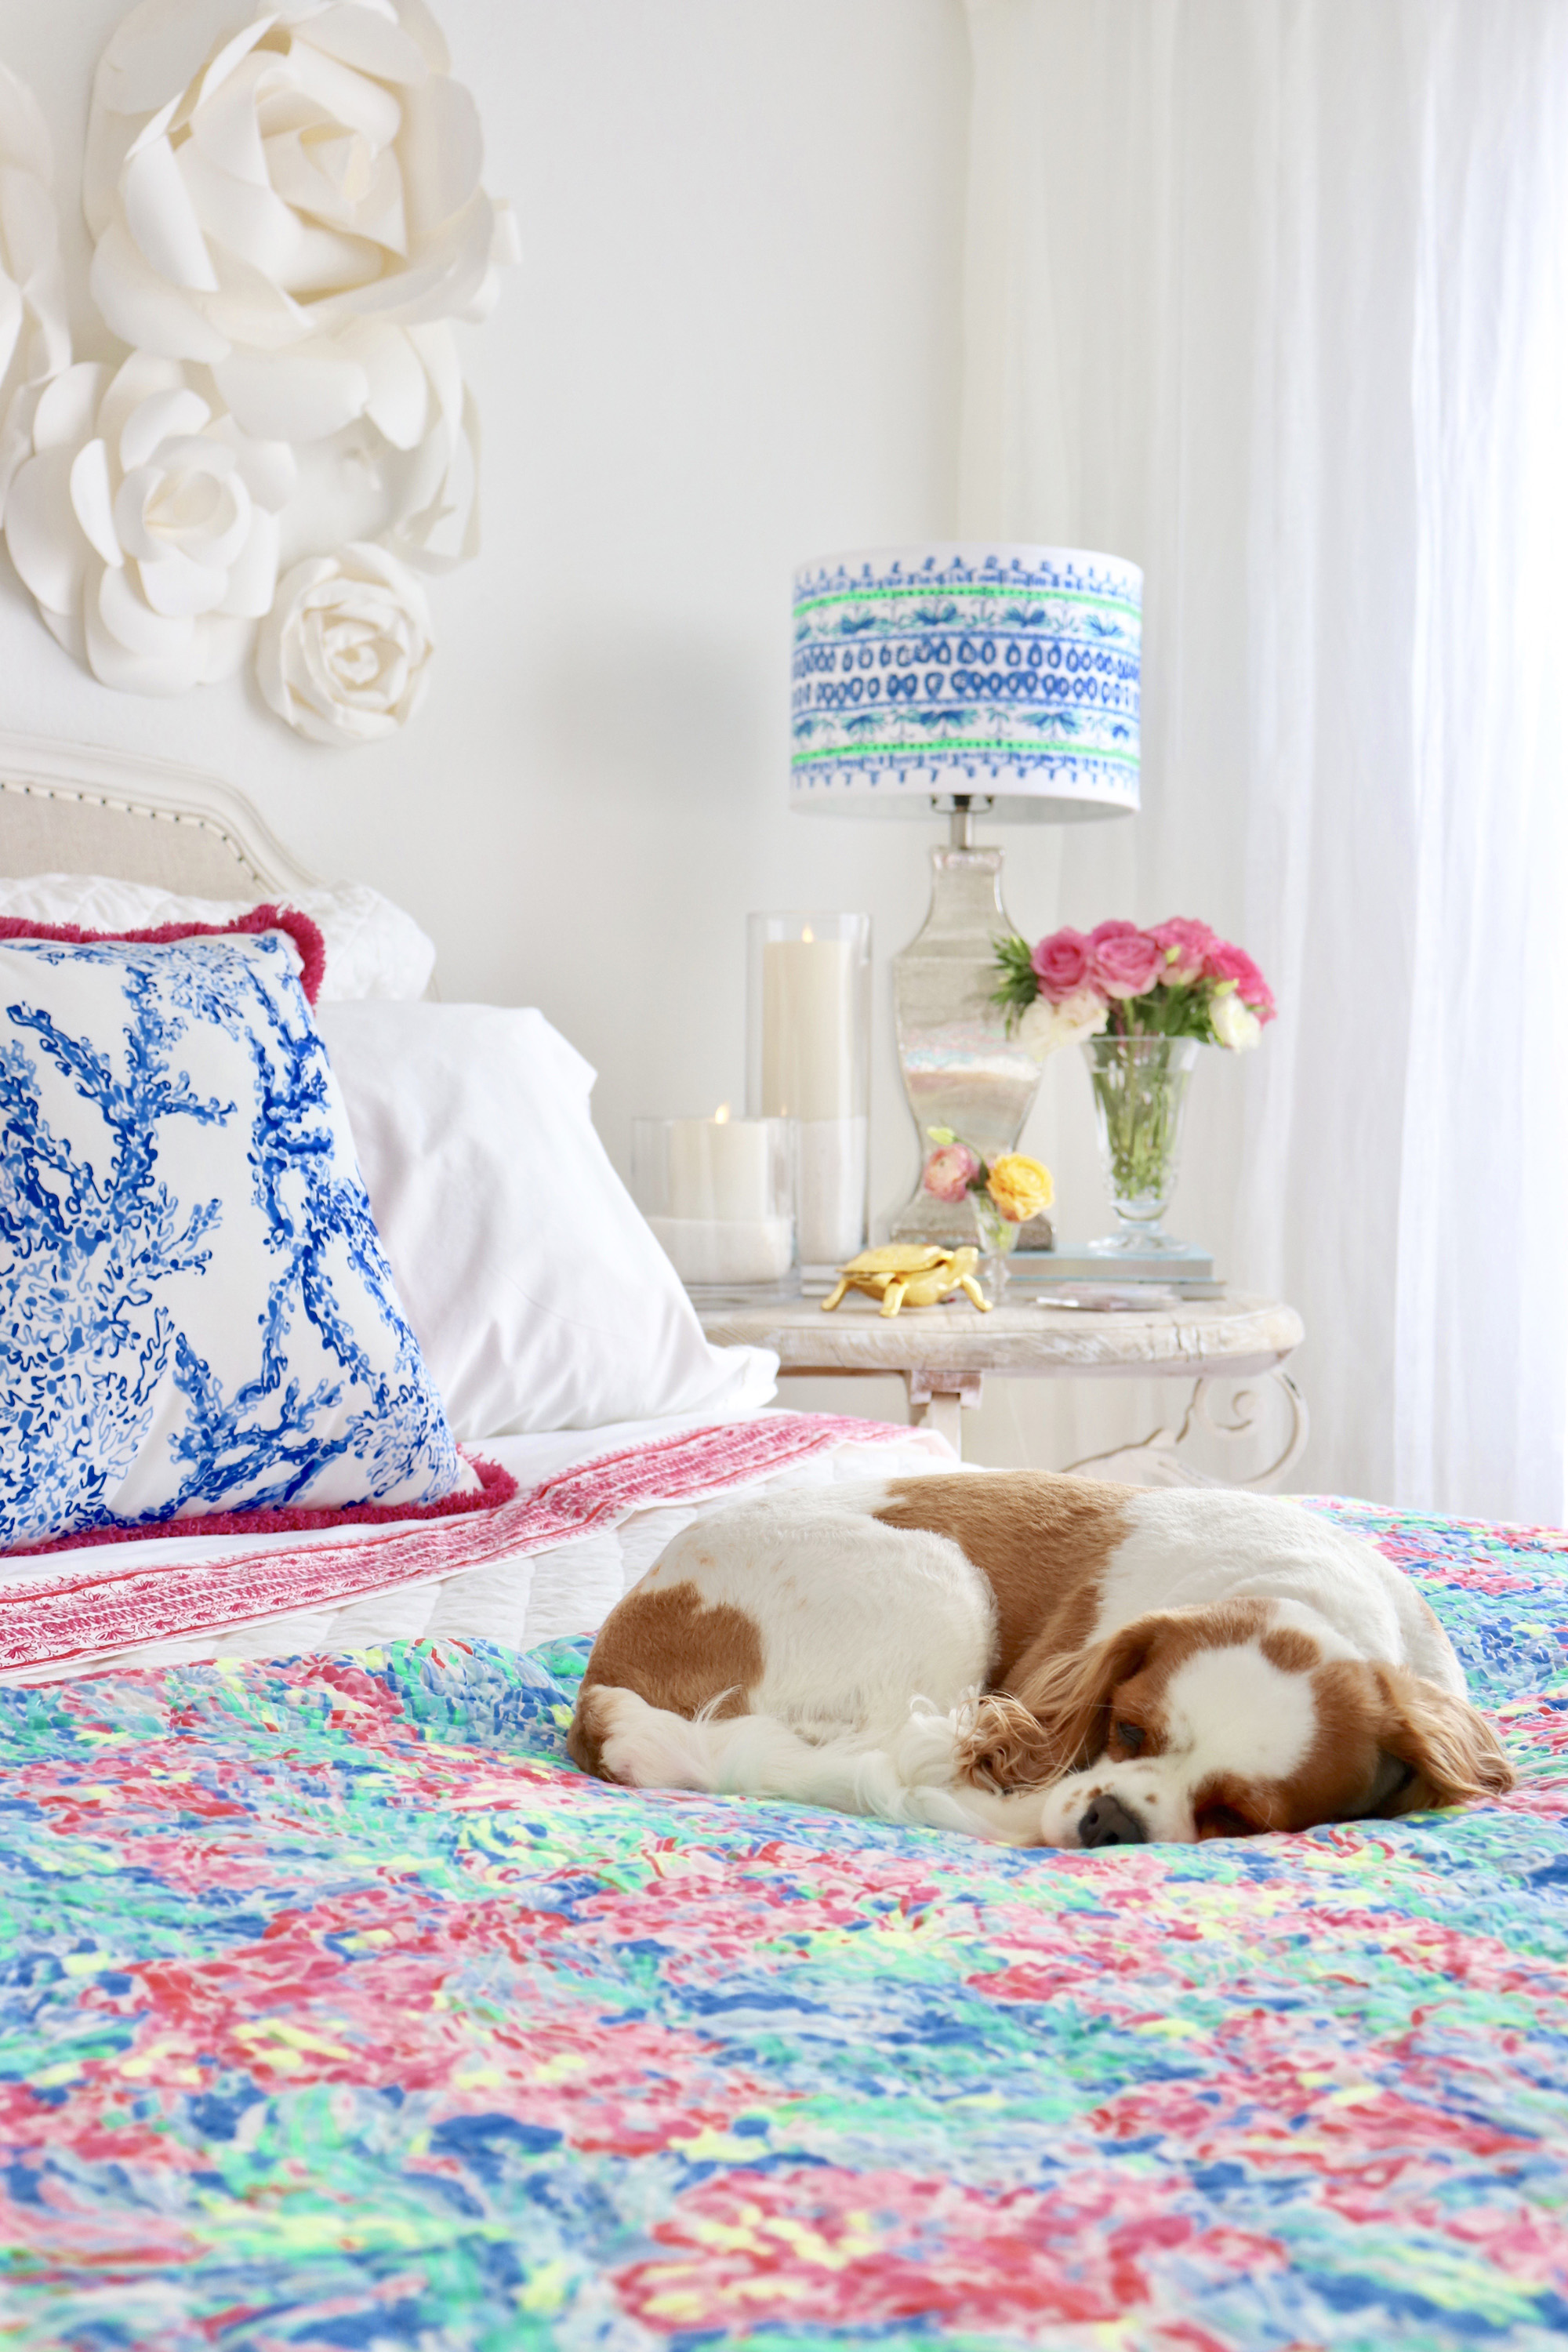 Exceptionnel Colorful Bedroom Update With The New Lilly Pulitzer U0026 Pottery Barn  Collection